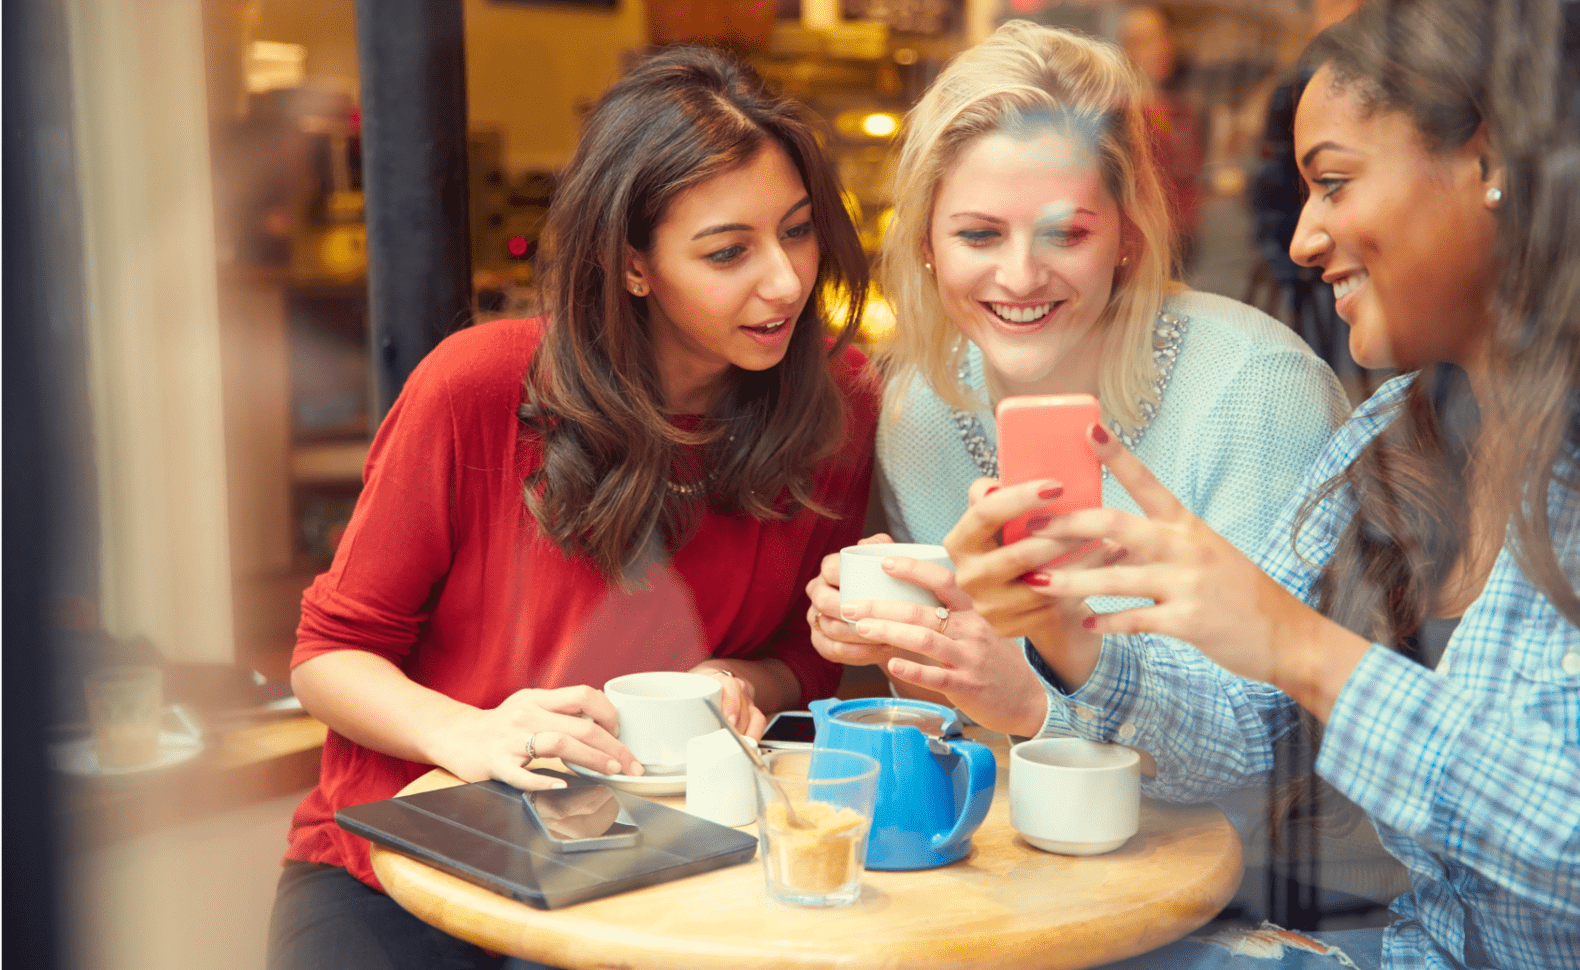 4 Key Consumer Influencer Personalities and Best Practices to Activate Each